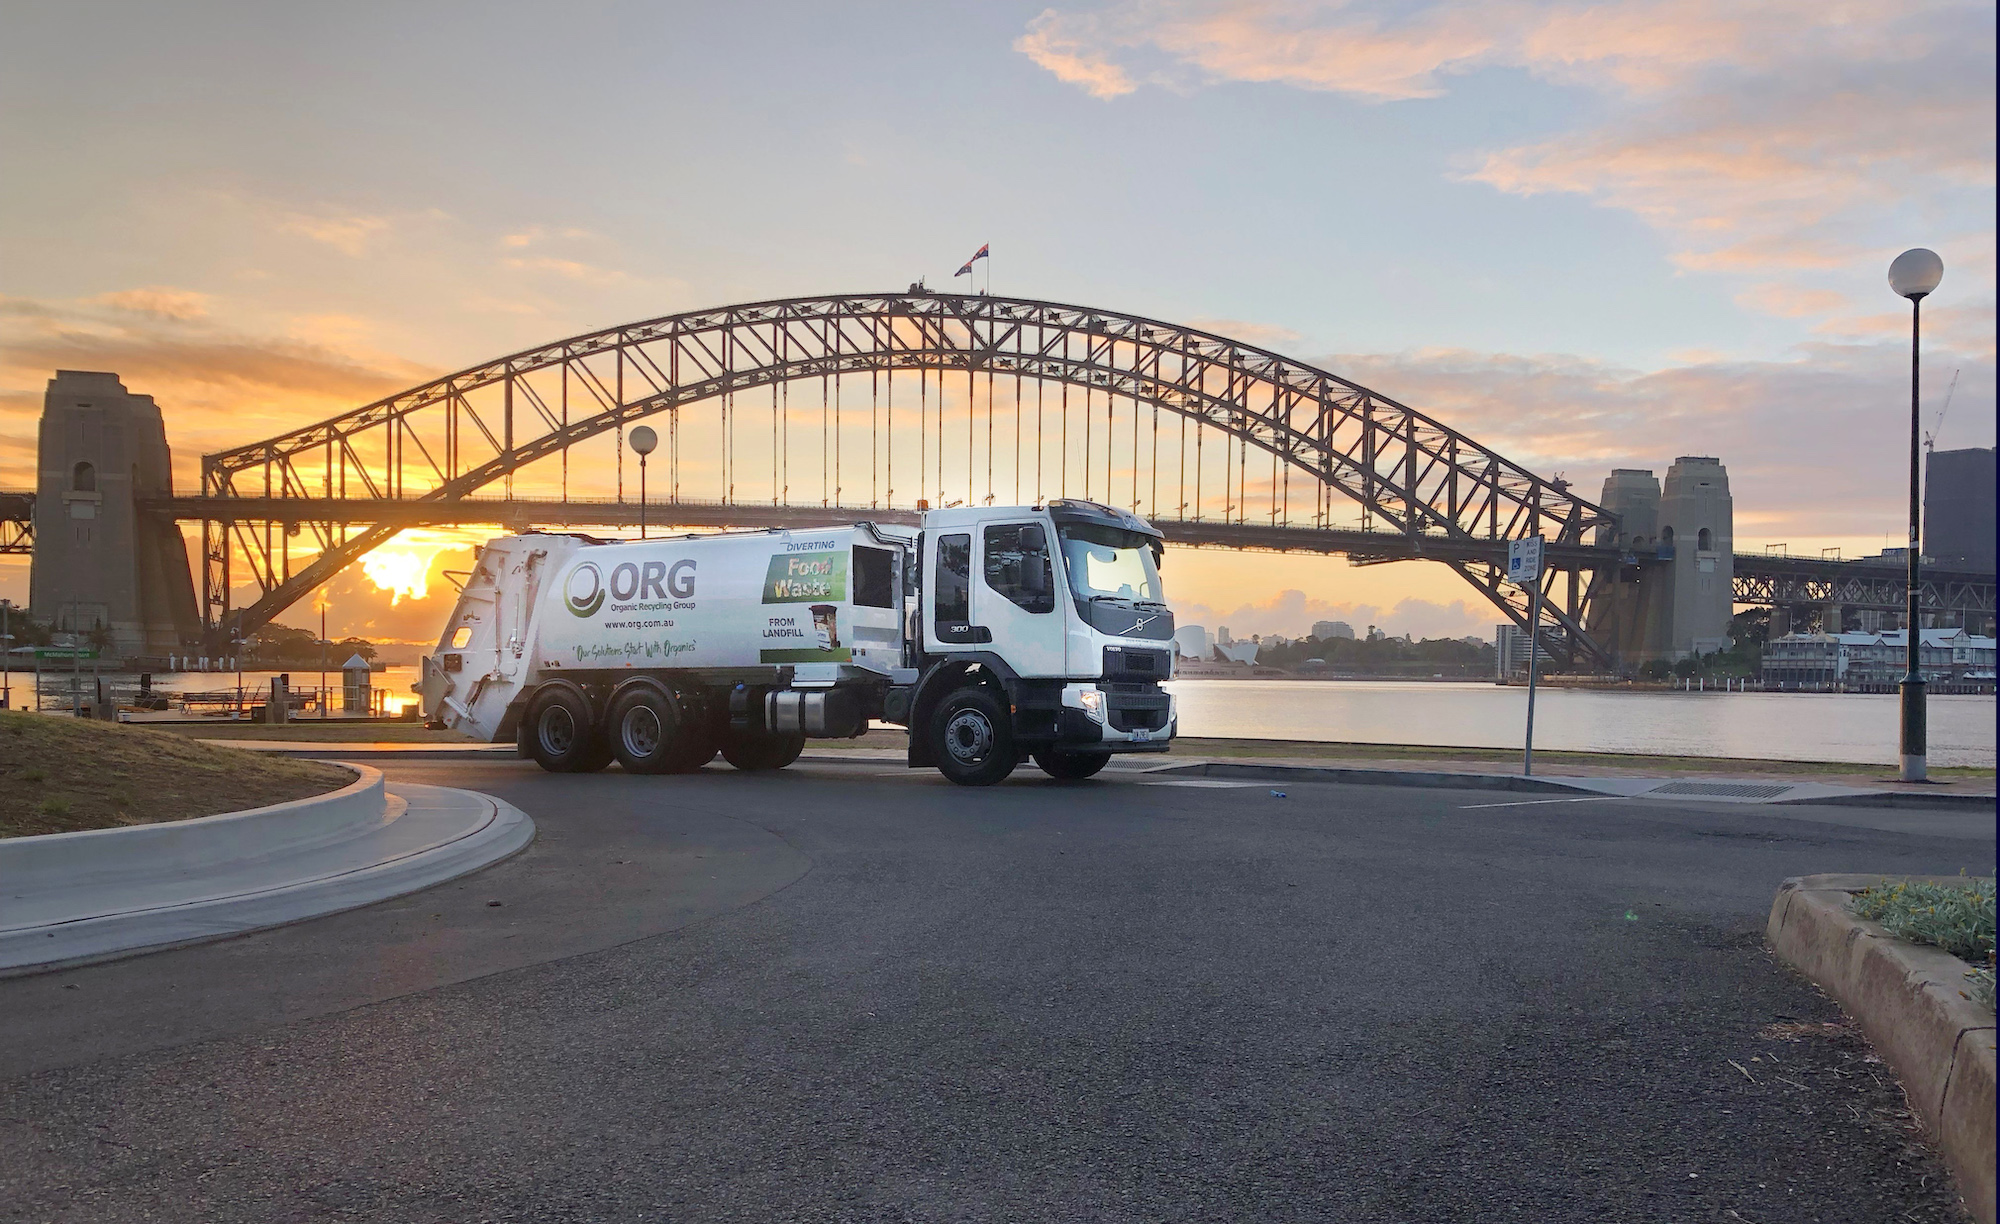 photo of an ORG recycling truck in front of the Sydney Harbour Bridge